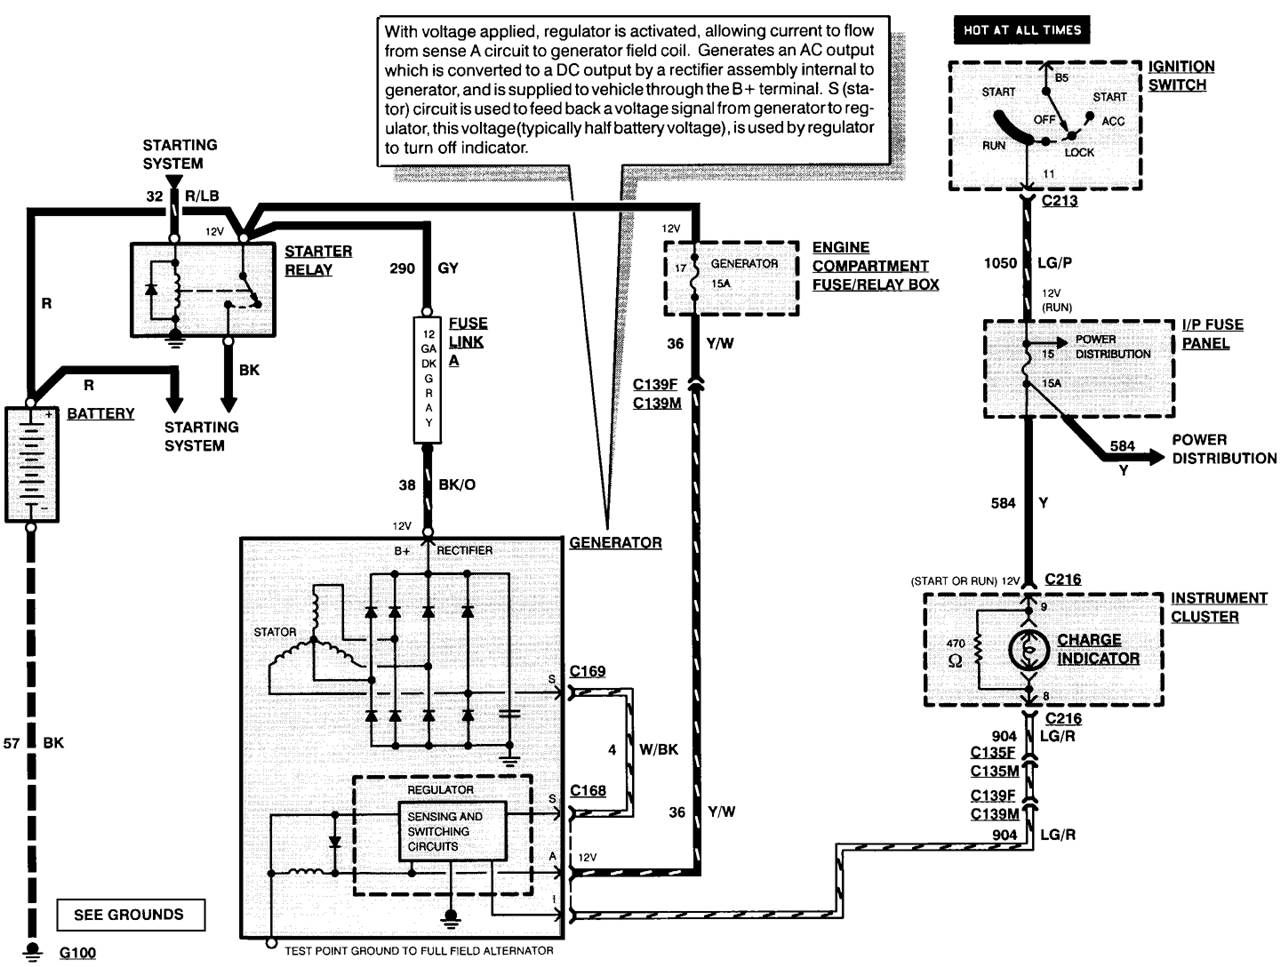 toyota hilux alternator wiring diagram with 1979 Toyota Voltage Regulator Diagram on 1984 Toyota Wiring Schematic besides 94specs also Denso Heater Wiring Diagram also Wiring Diagram For 1969 Ford F100 in addition 85 Toyota Pickup Alternator Wiring.